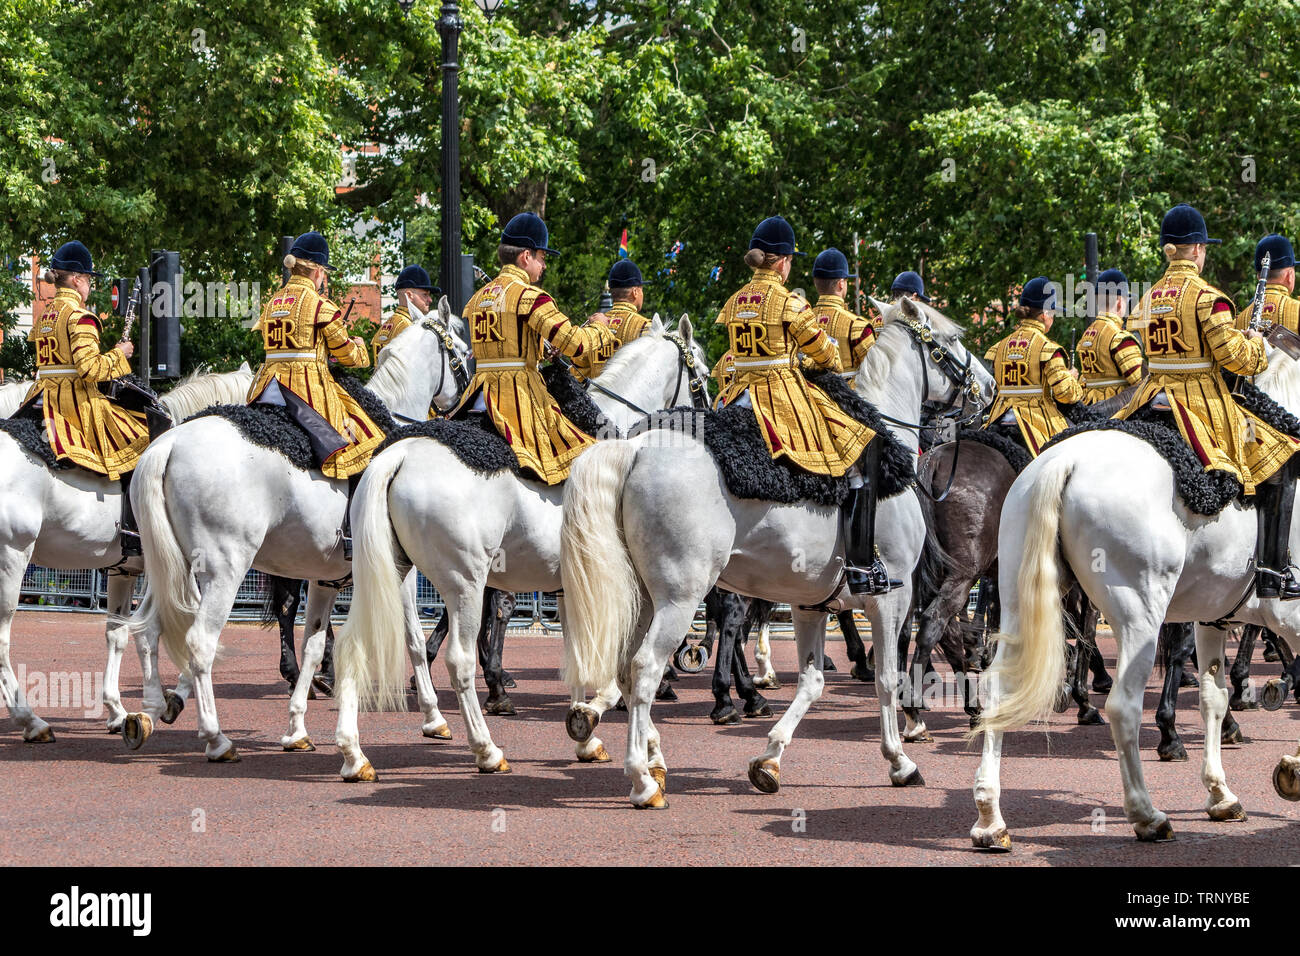 The White horses of the Mounted Band of The Household Cavalry on The Mall at The Trooping Of The Colour Ceremony ,London 2019 - Stock Image